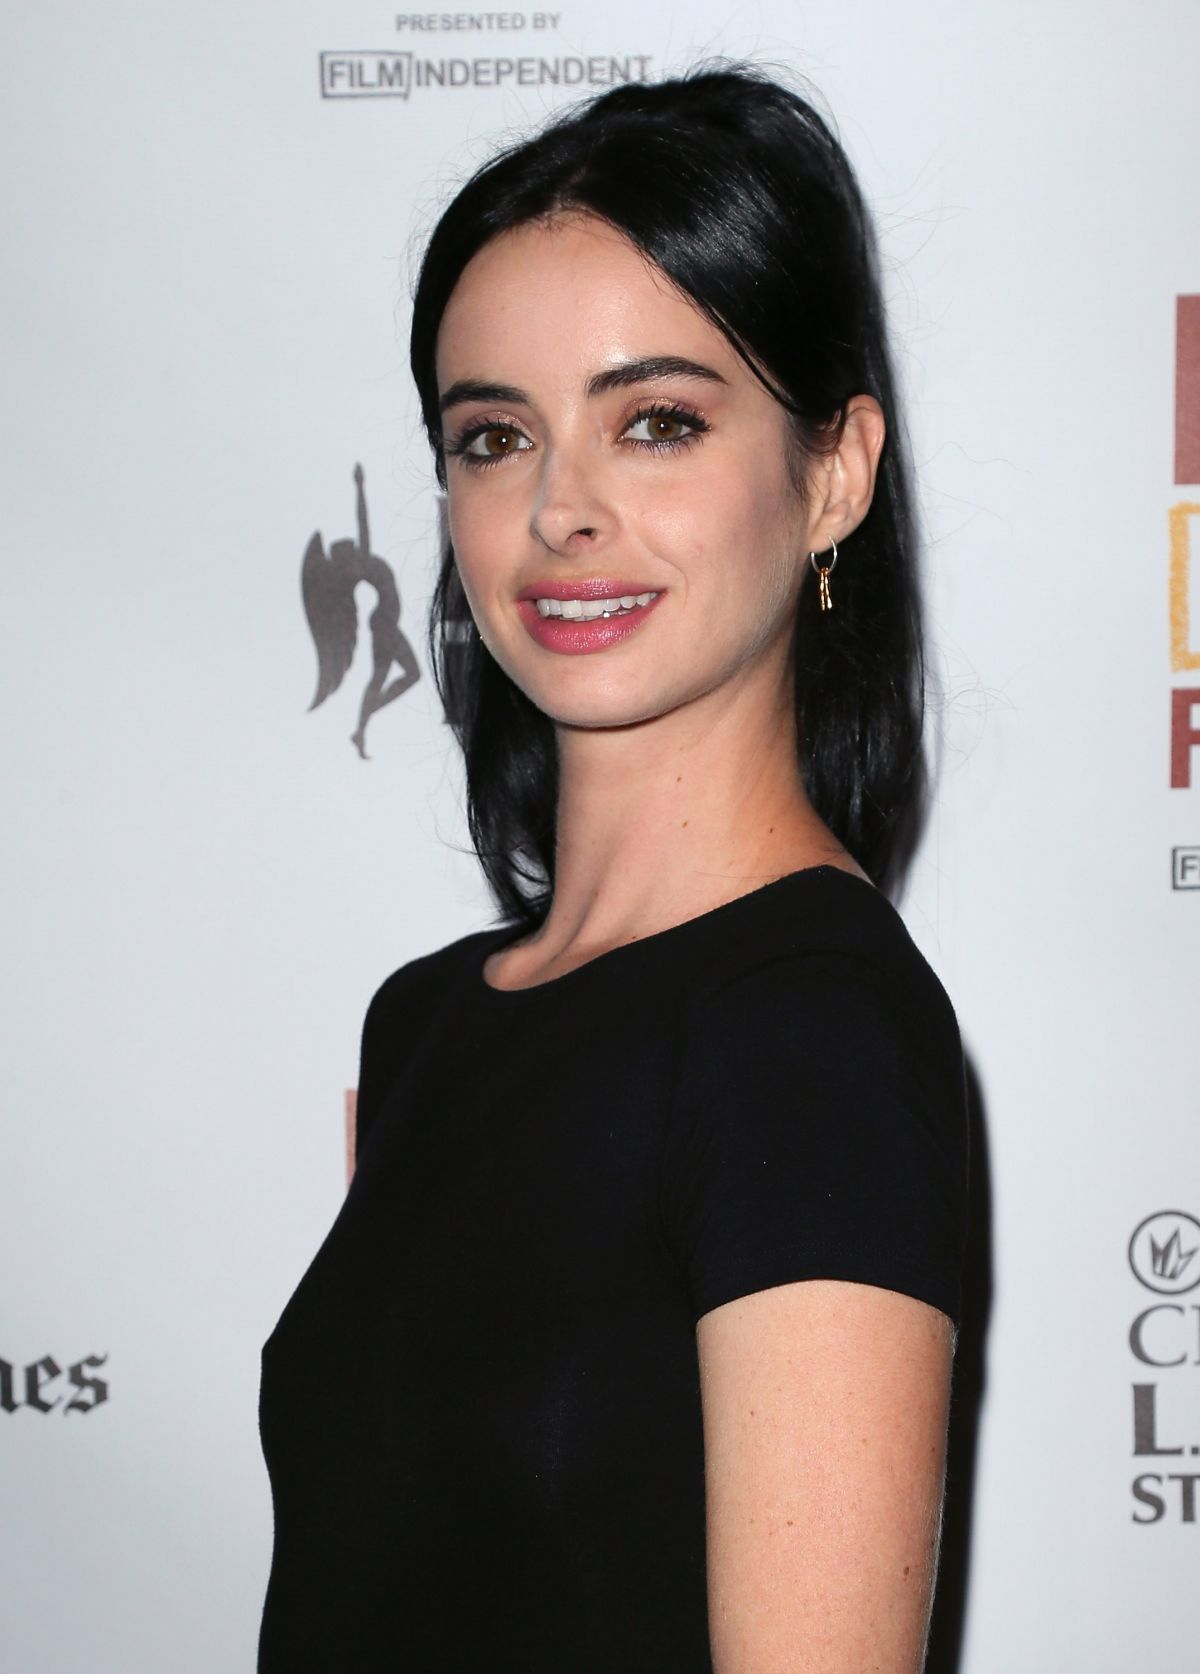 Krysten Ritter Cover: KRYSTEN RITTER At The Road Within Premiere In Los Angeles